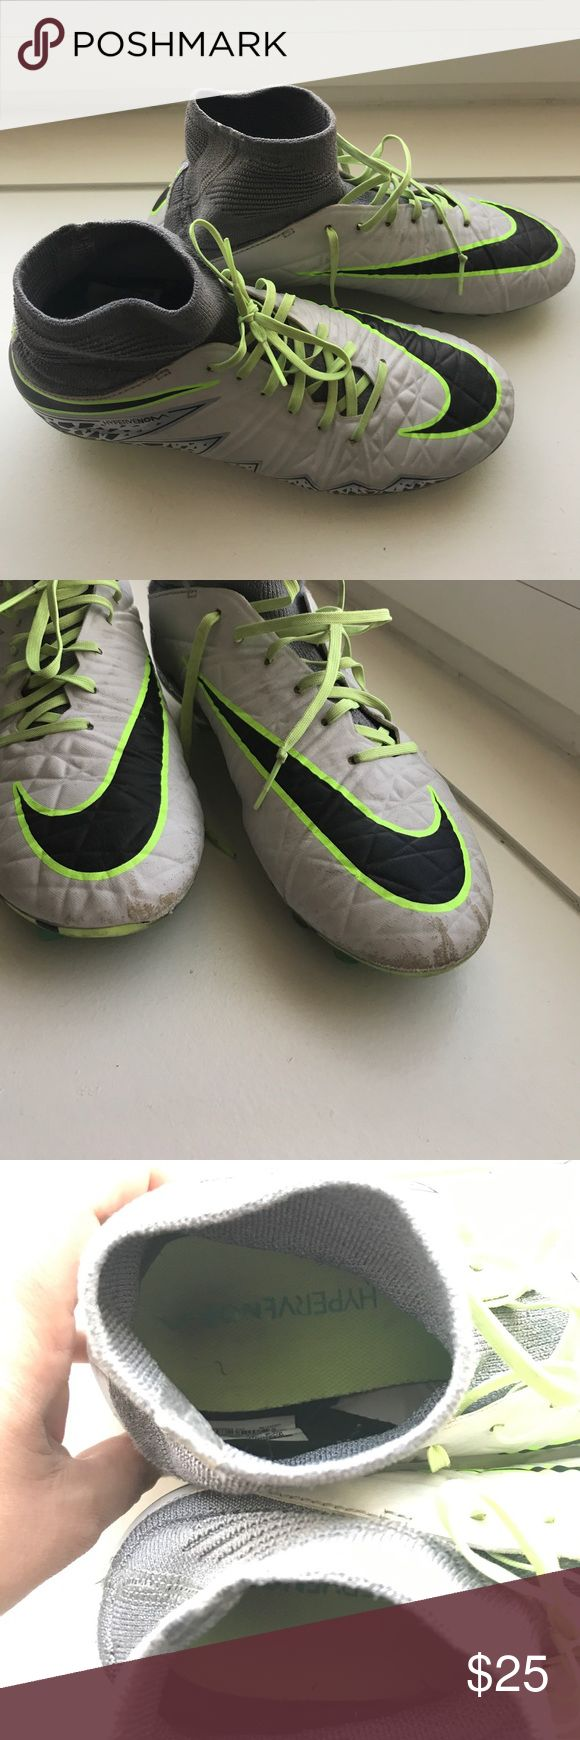 Nike Hypervenom youth Cleats Barely worn, excellent used condition. Youth size 5.5 Nike Shoes